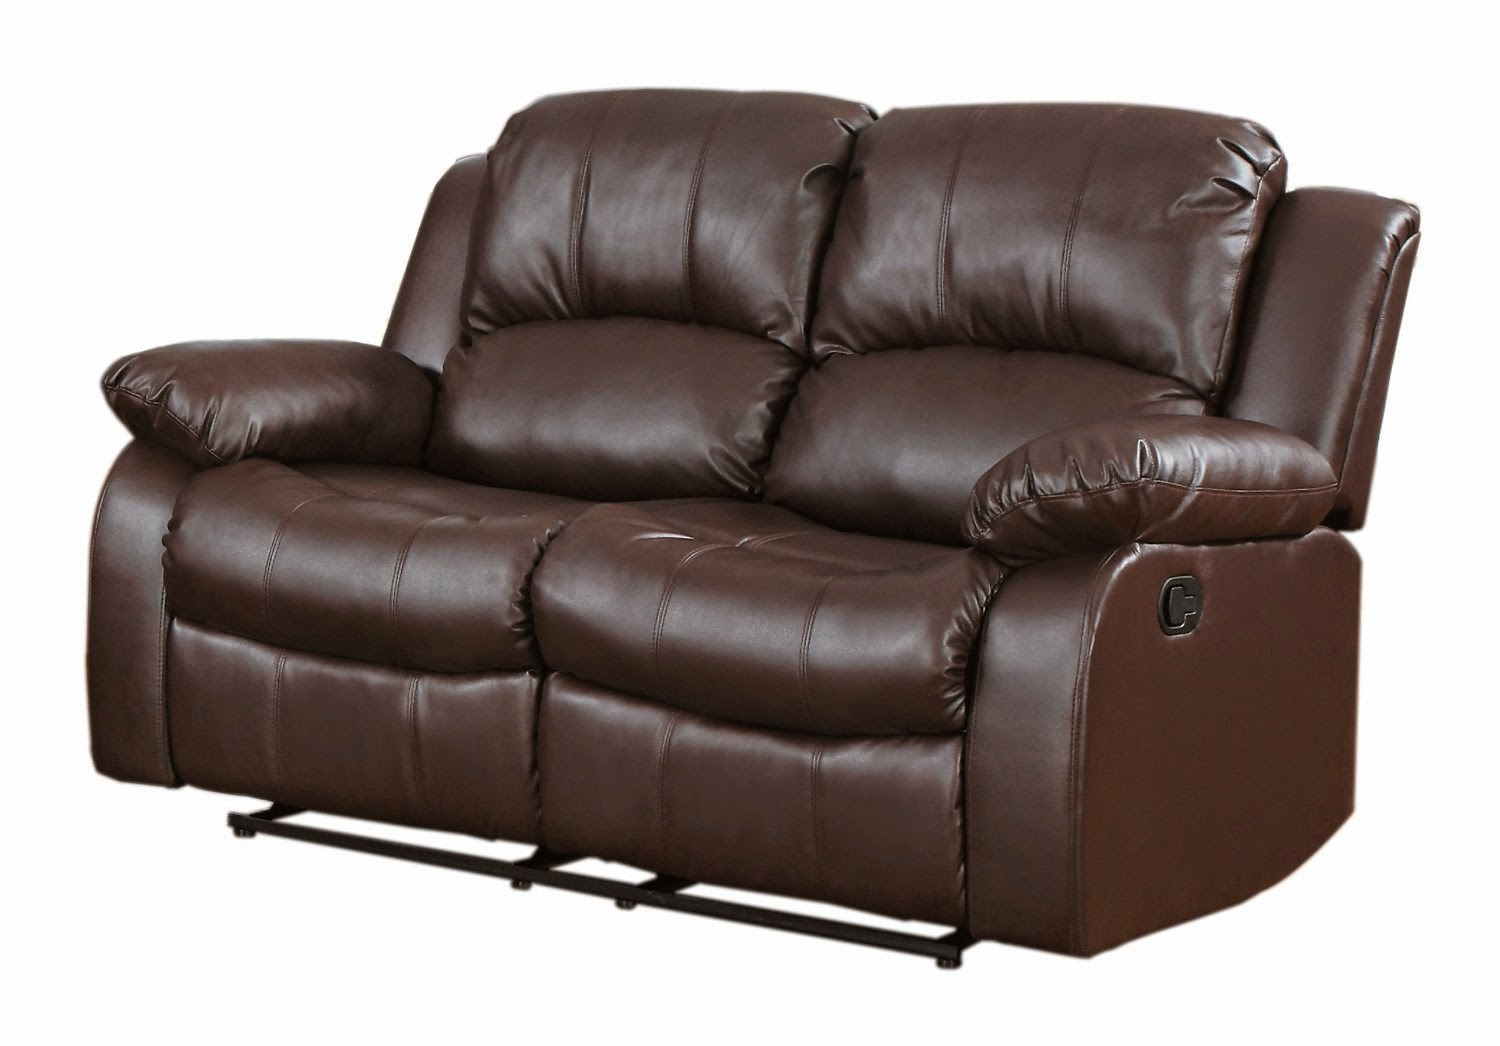 Stupendous Serta Double Reclining Loveseat Serta Upholstery Double Bralicious Painted Fabric Chair Ideas Braliciousco